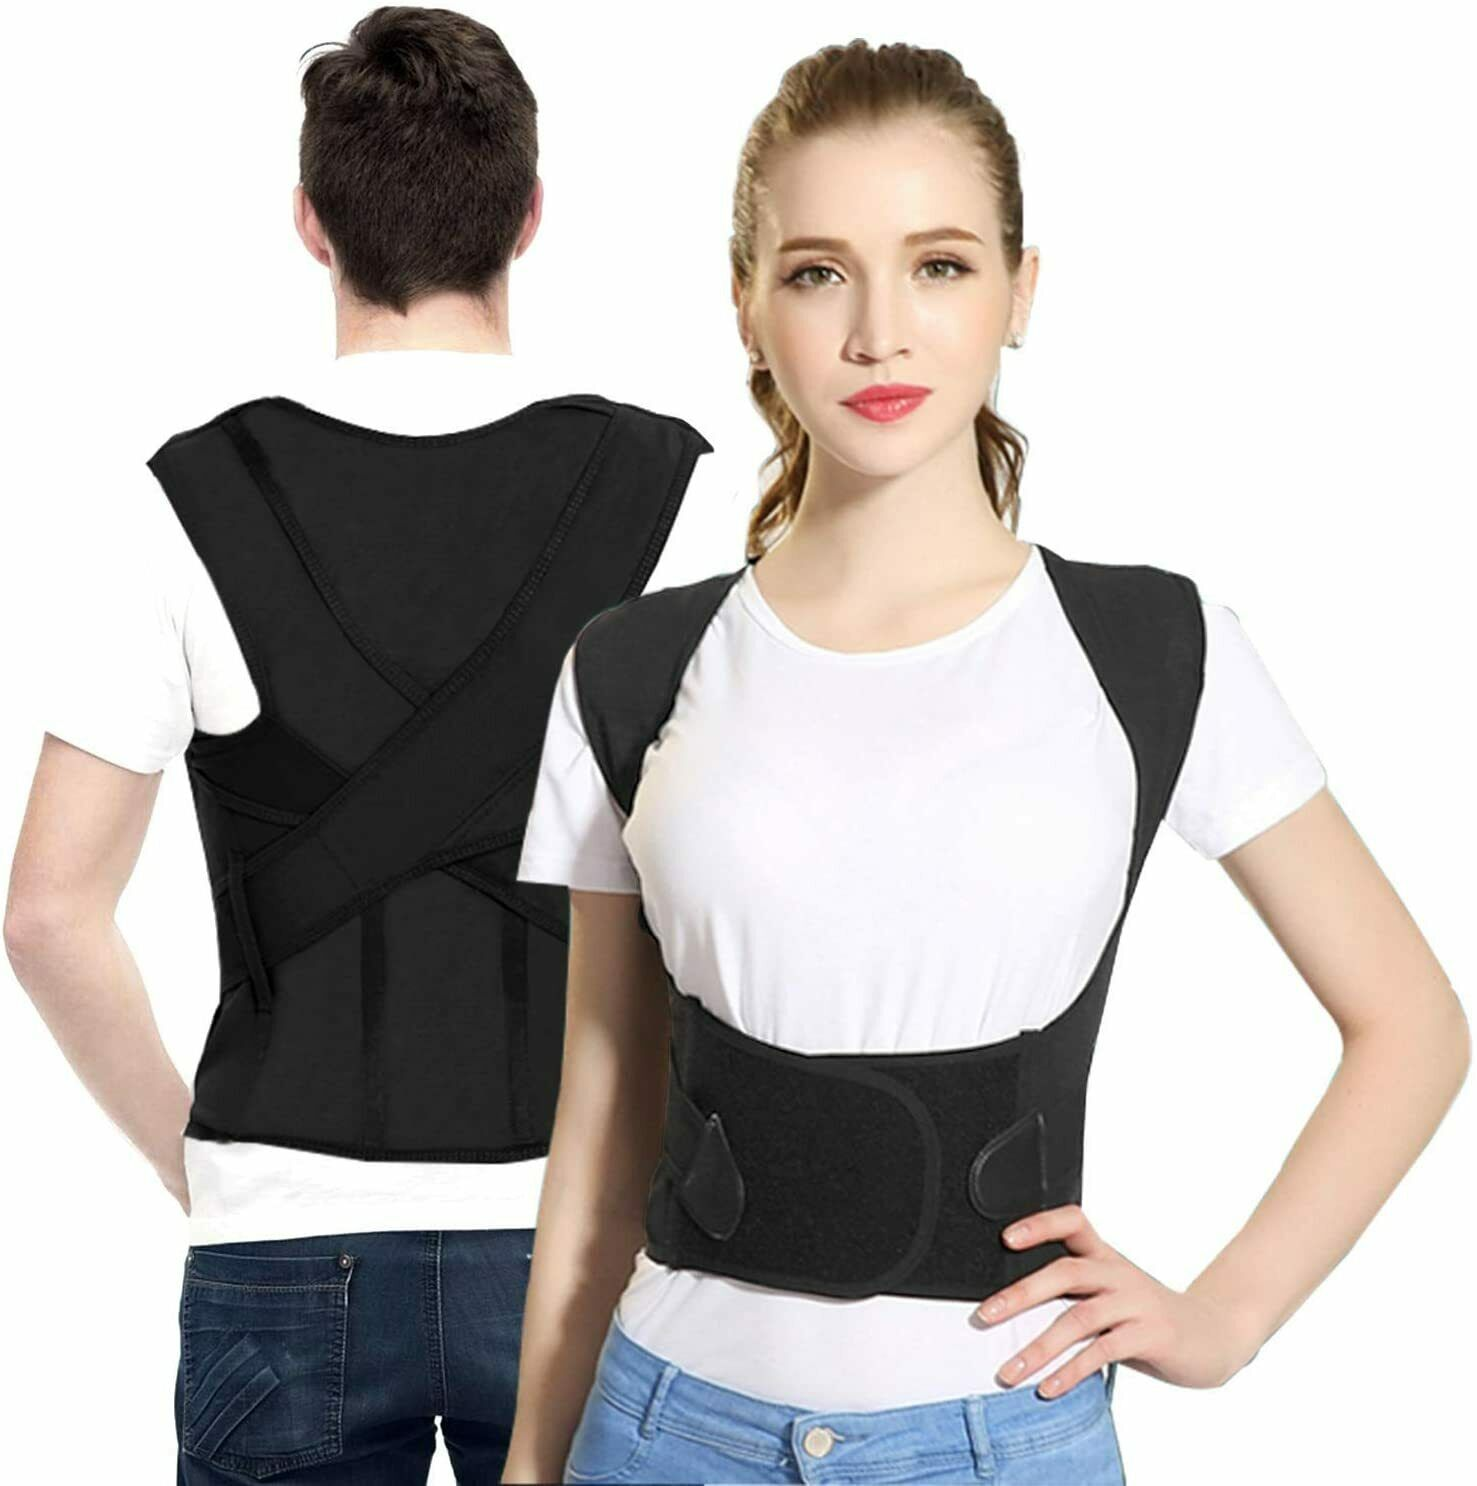 Posture Corrector Sportout Back Brace Four Support Bars Adjustable Health & Beauty